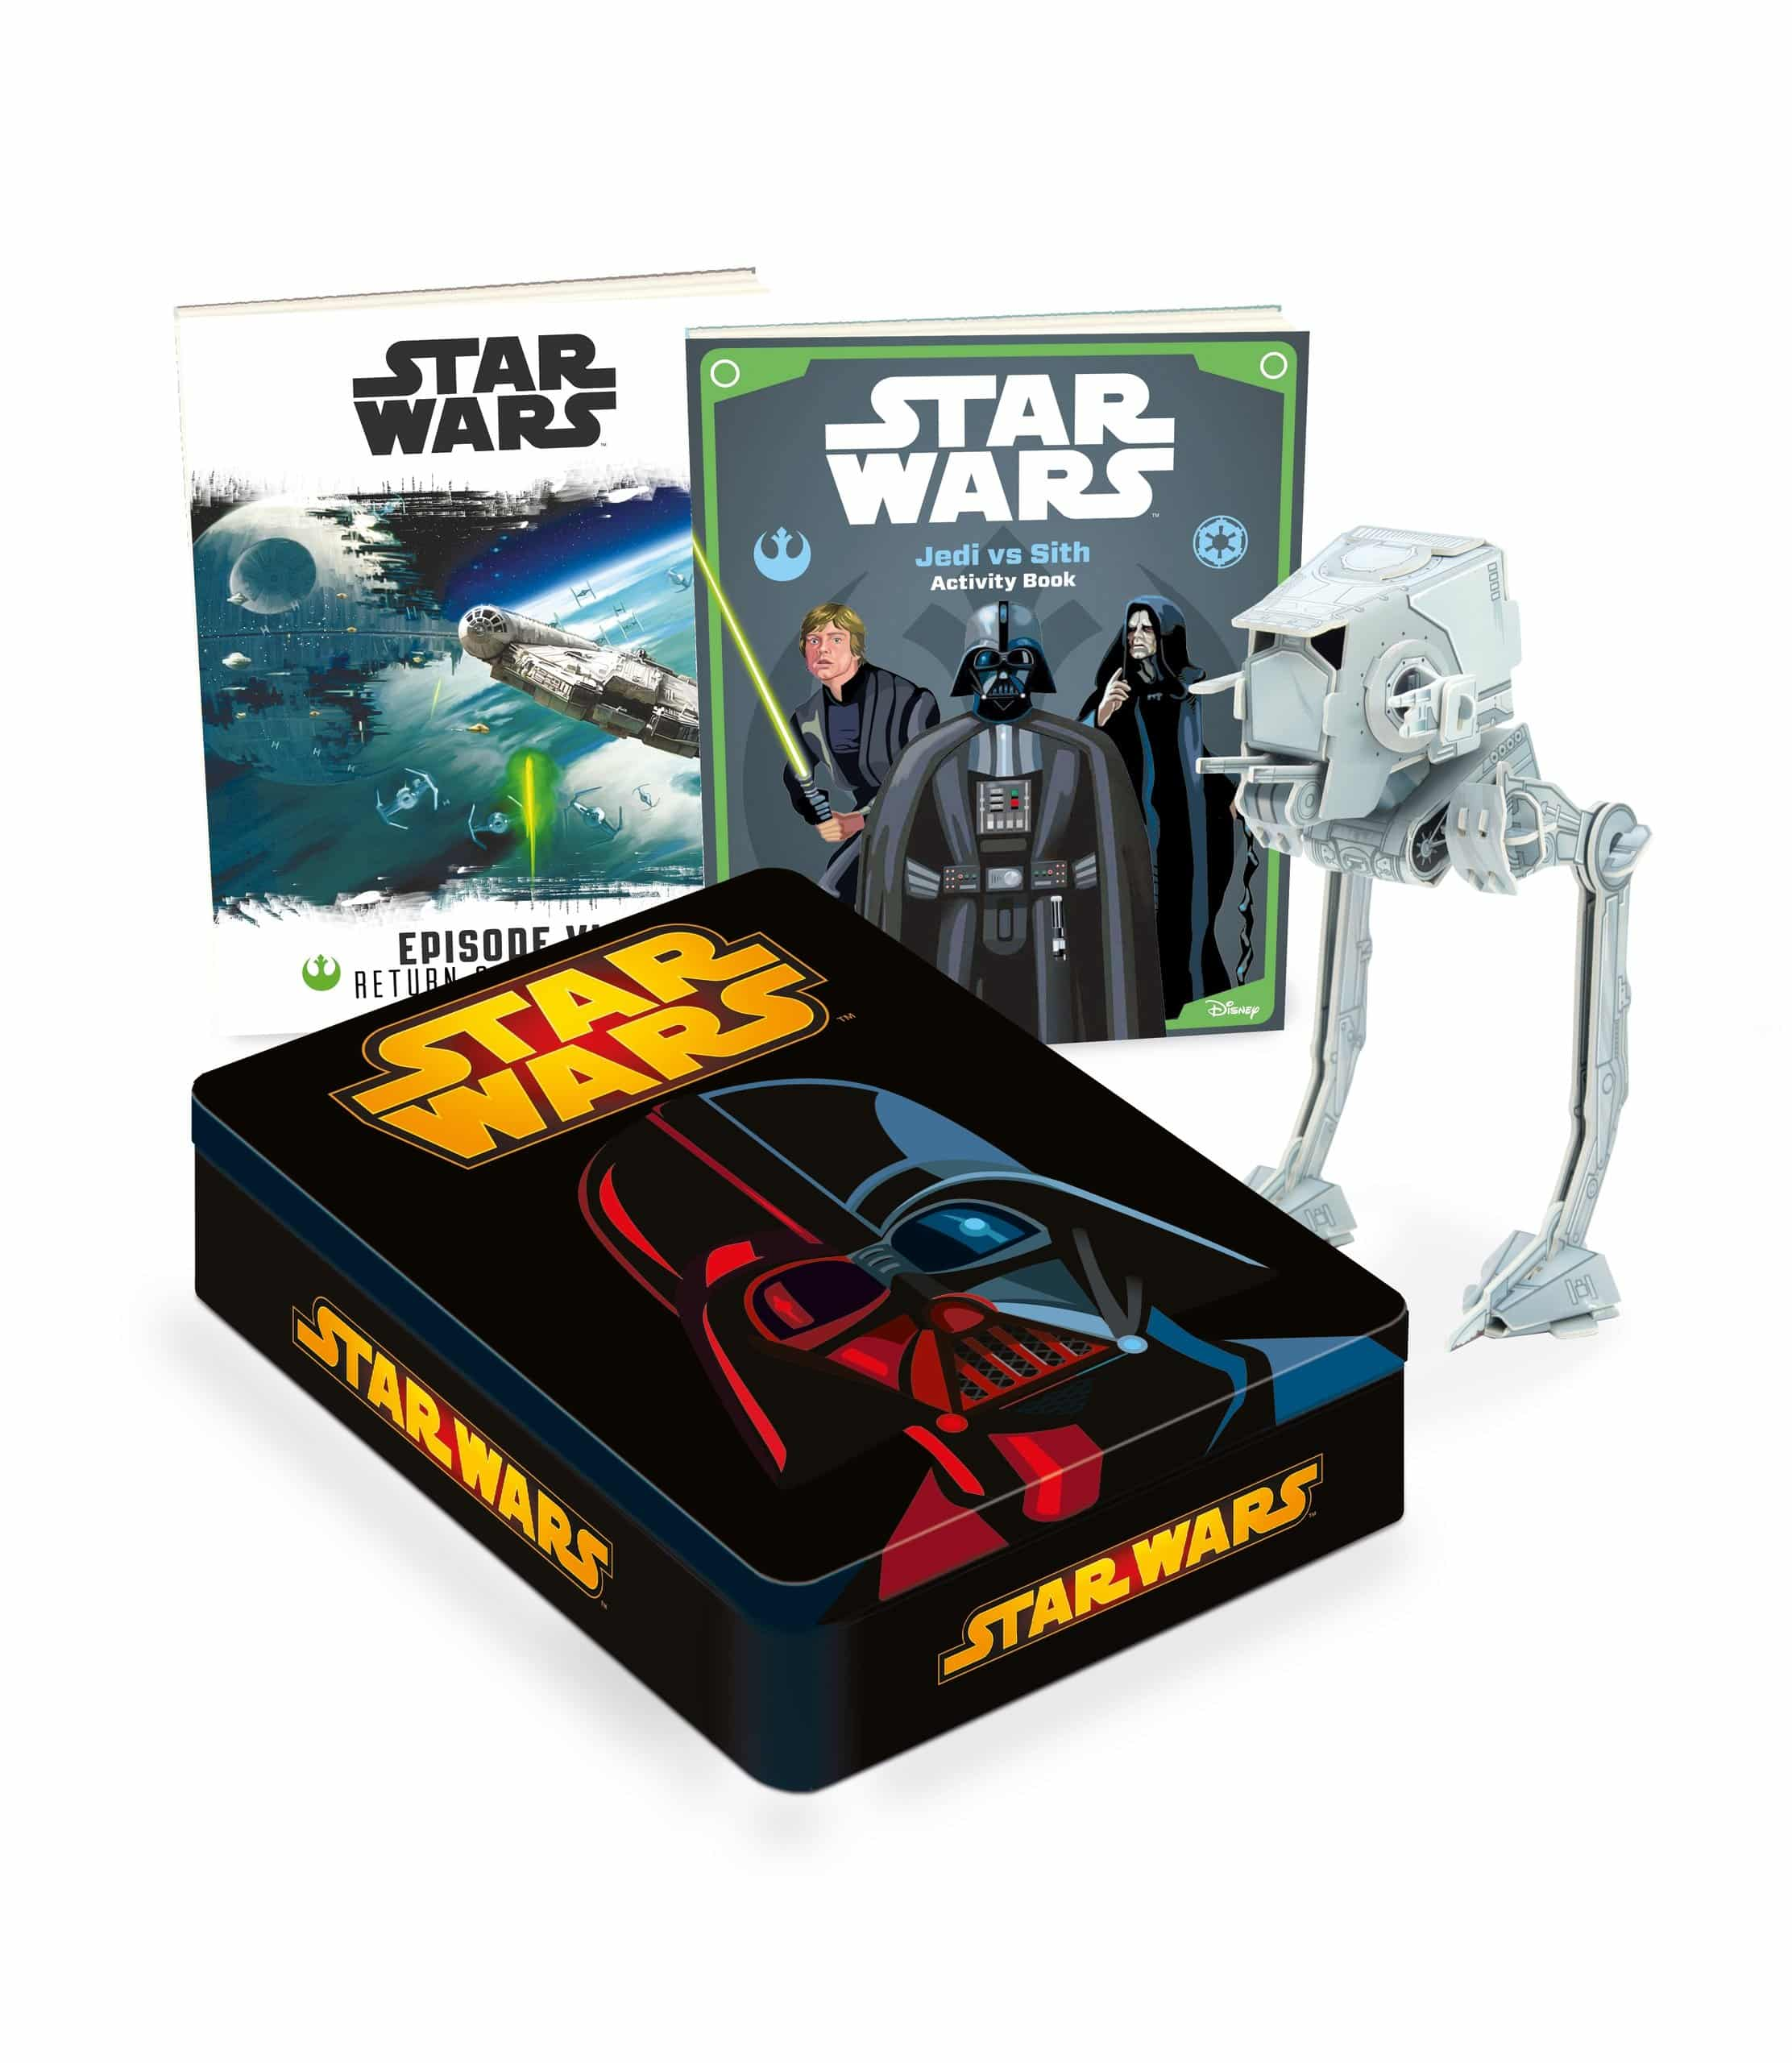 Win Star Wars: The Last Jedi Toy Merchandise Worth R3500